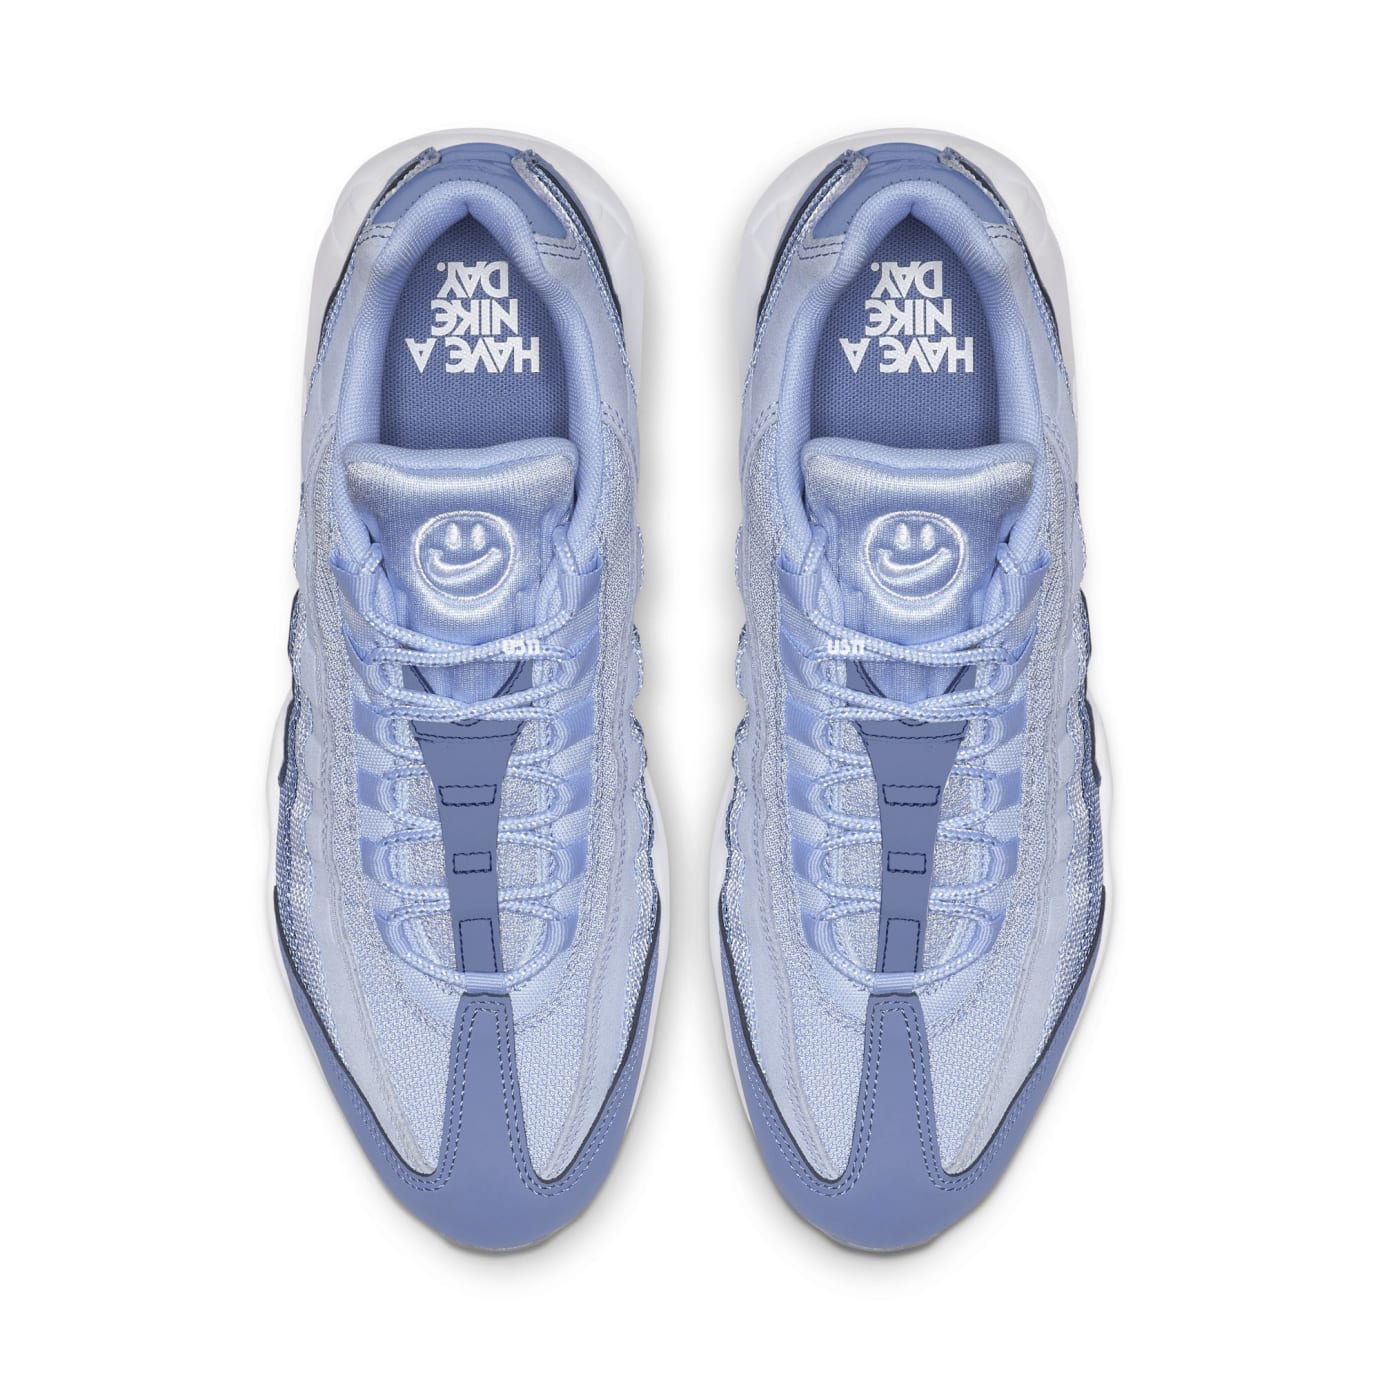 buy popular 93077 36da3 Image via US11 · Nike Air Max 95  Have a Nike Day Blue  (Top)